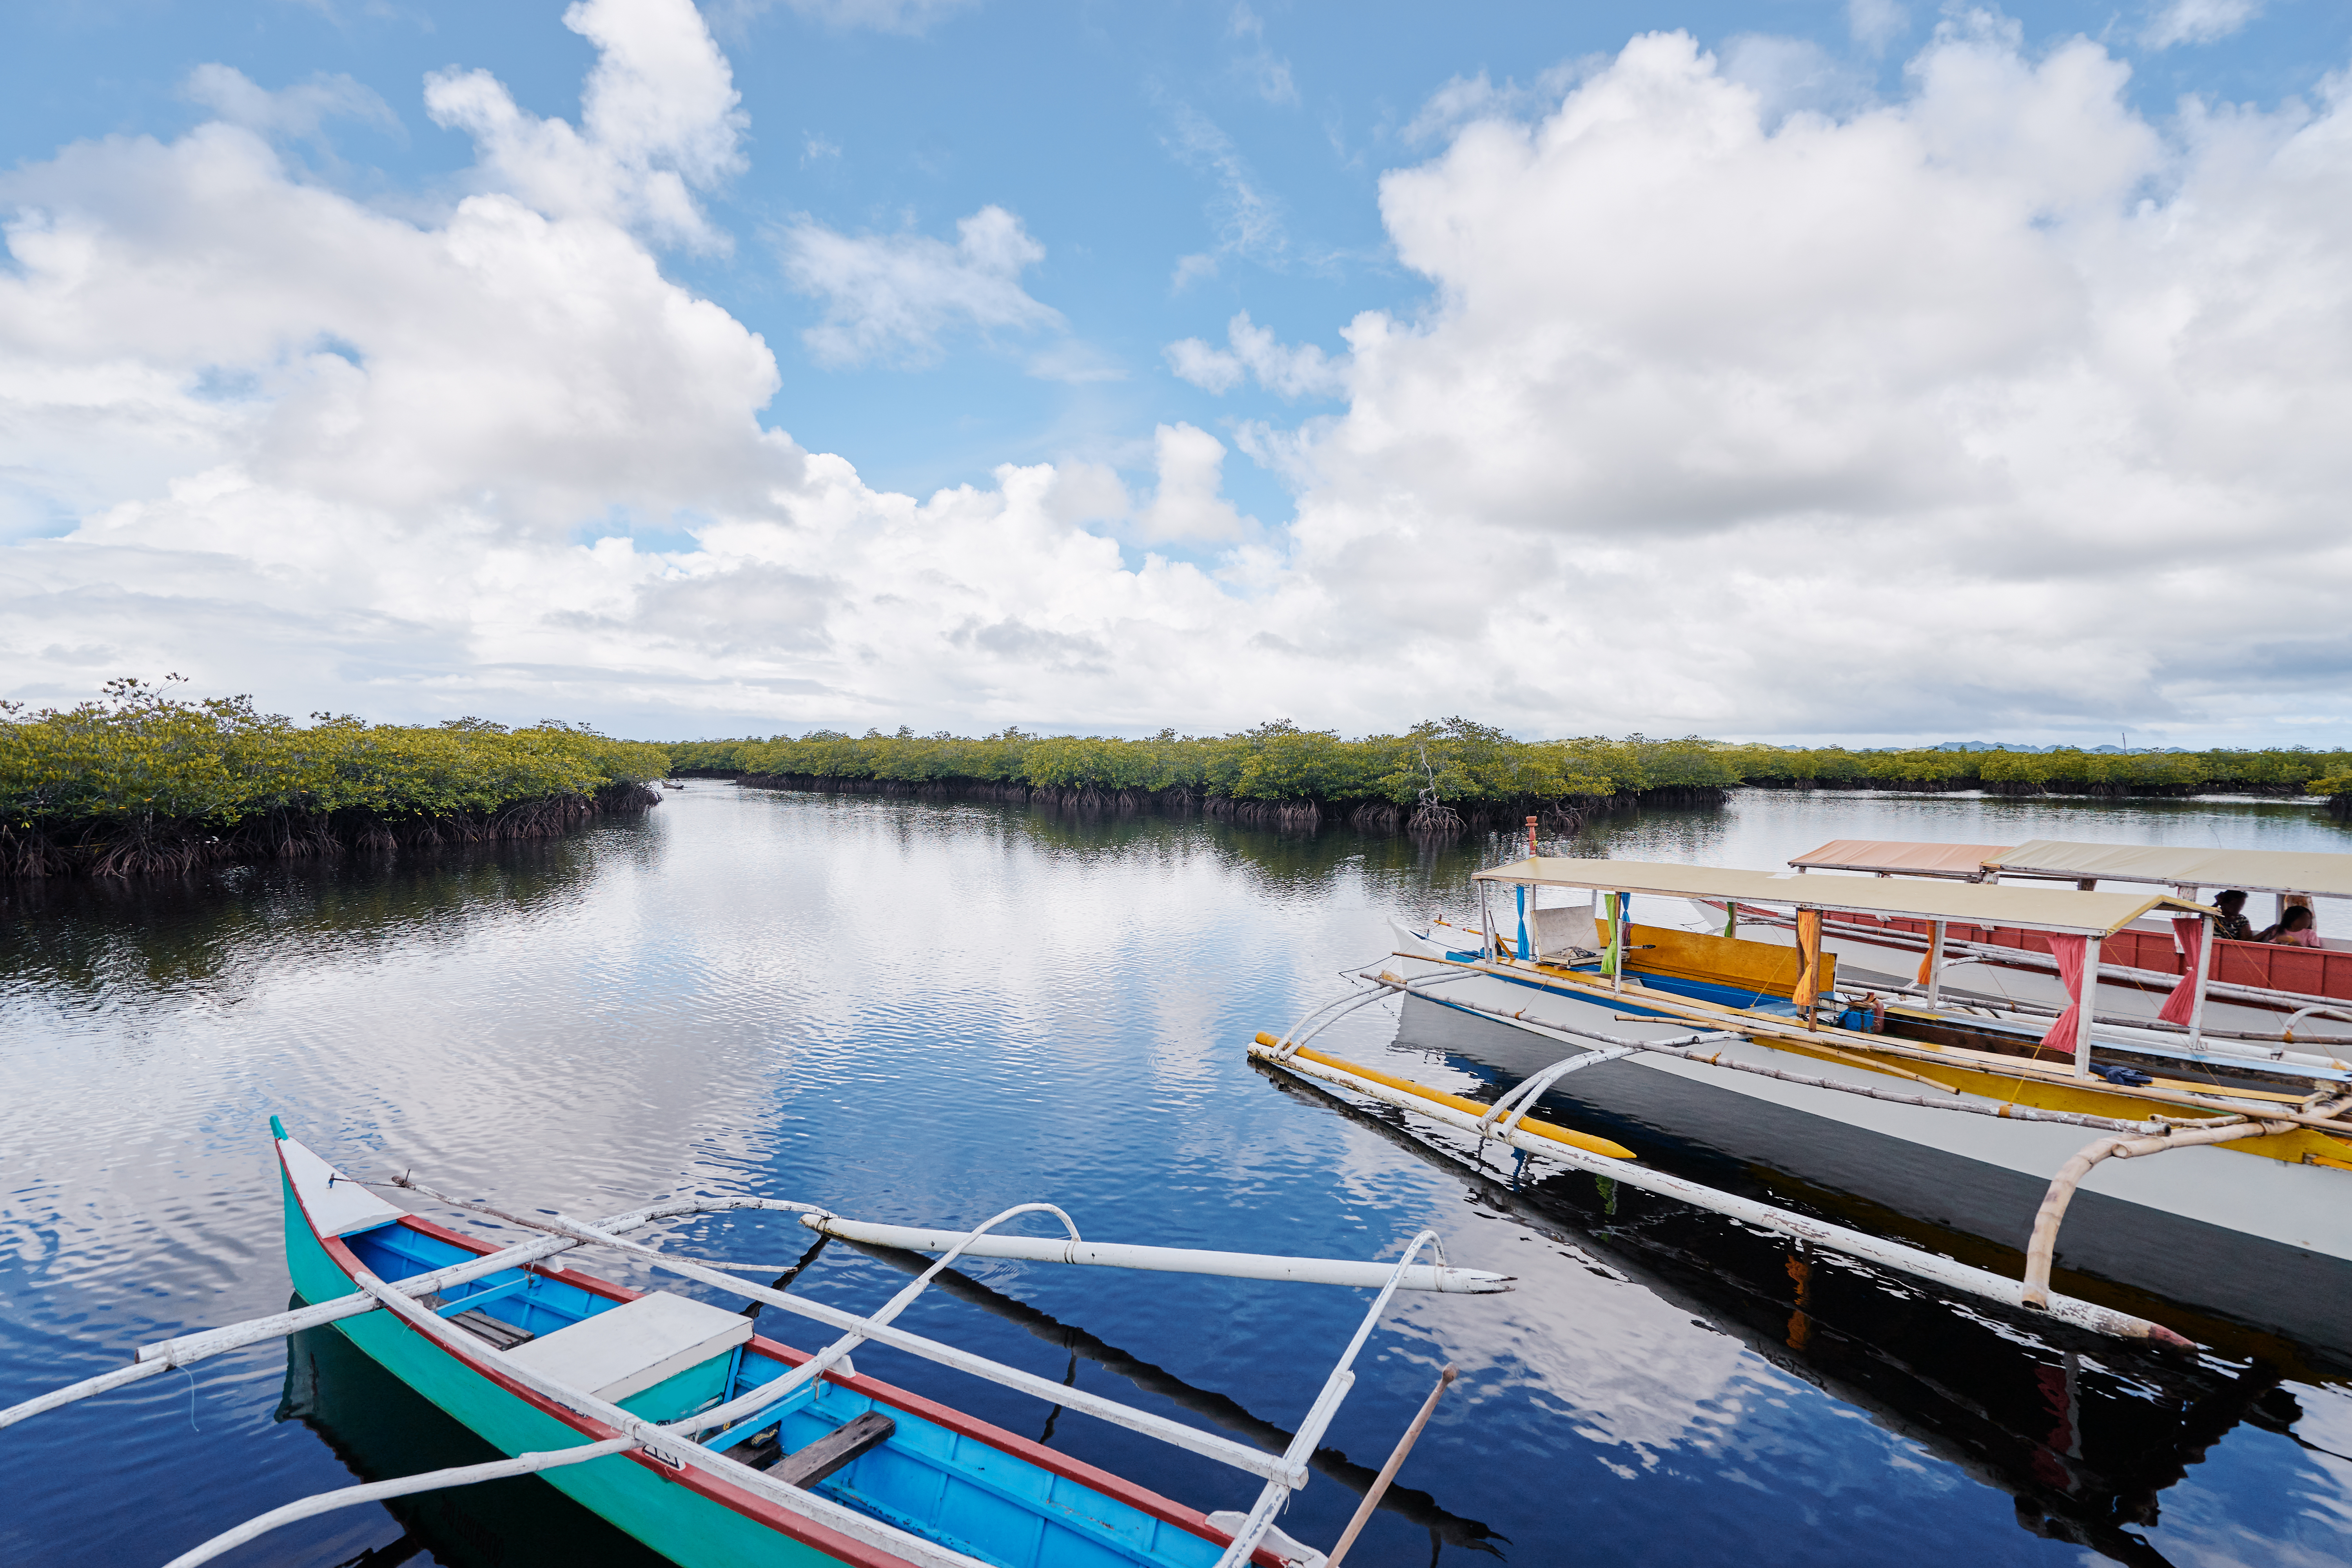 Boats in Cambuhat Village in Bohol